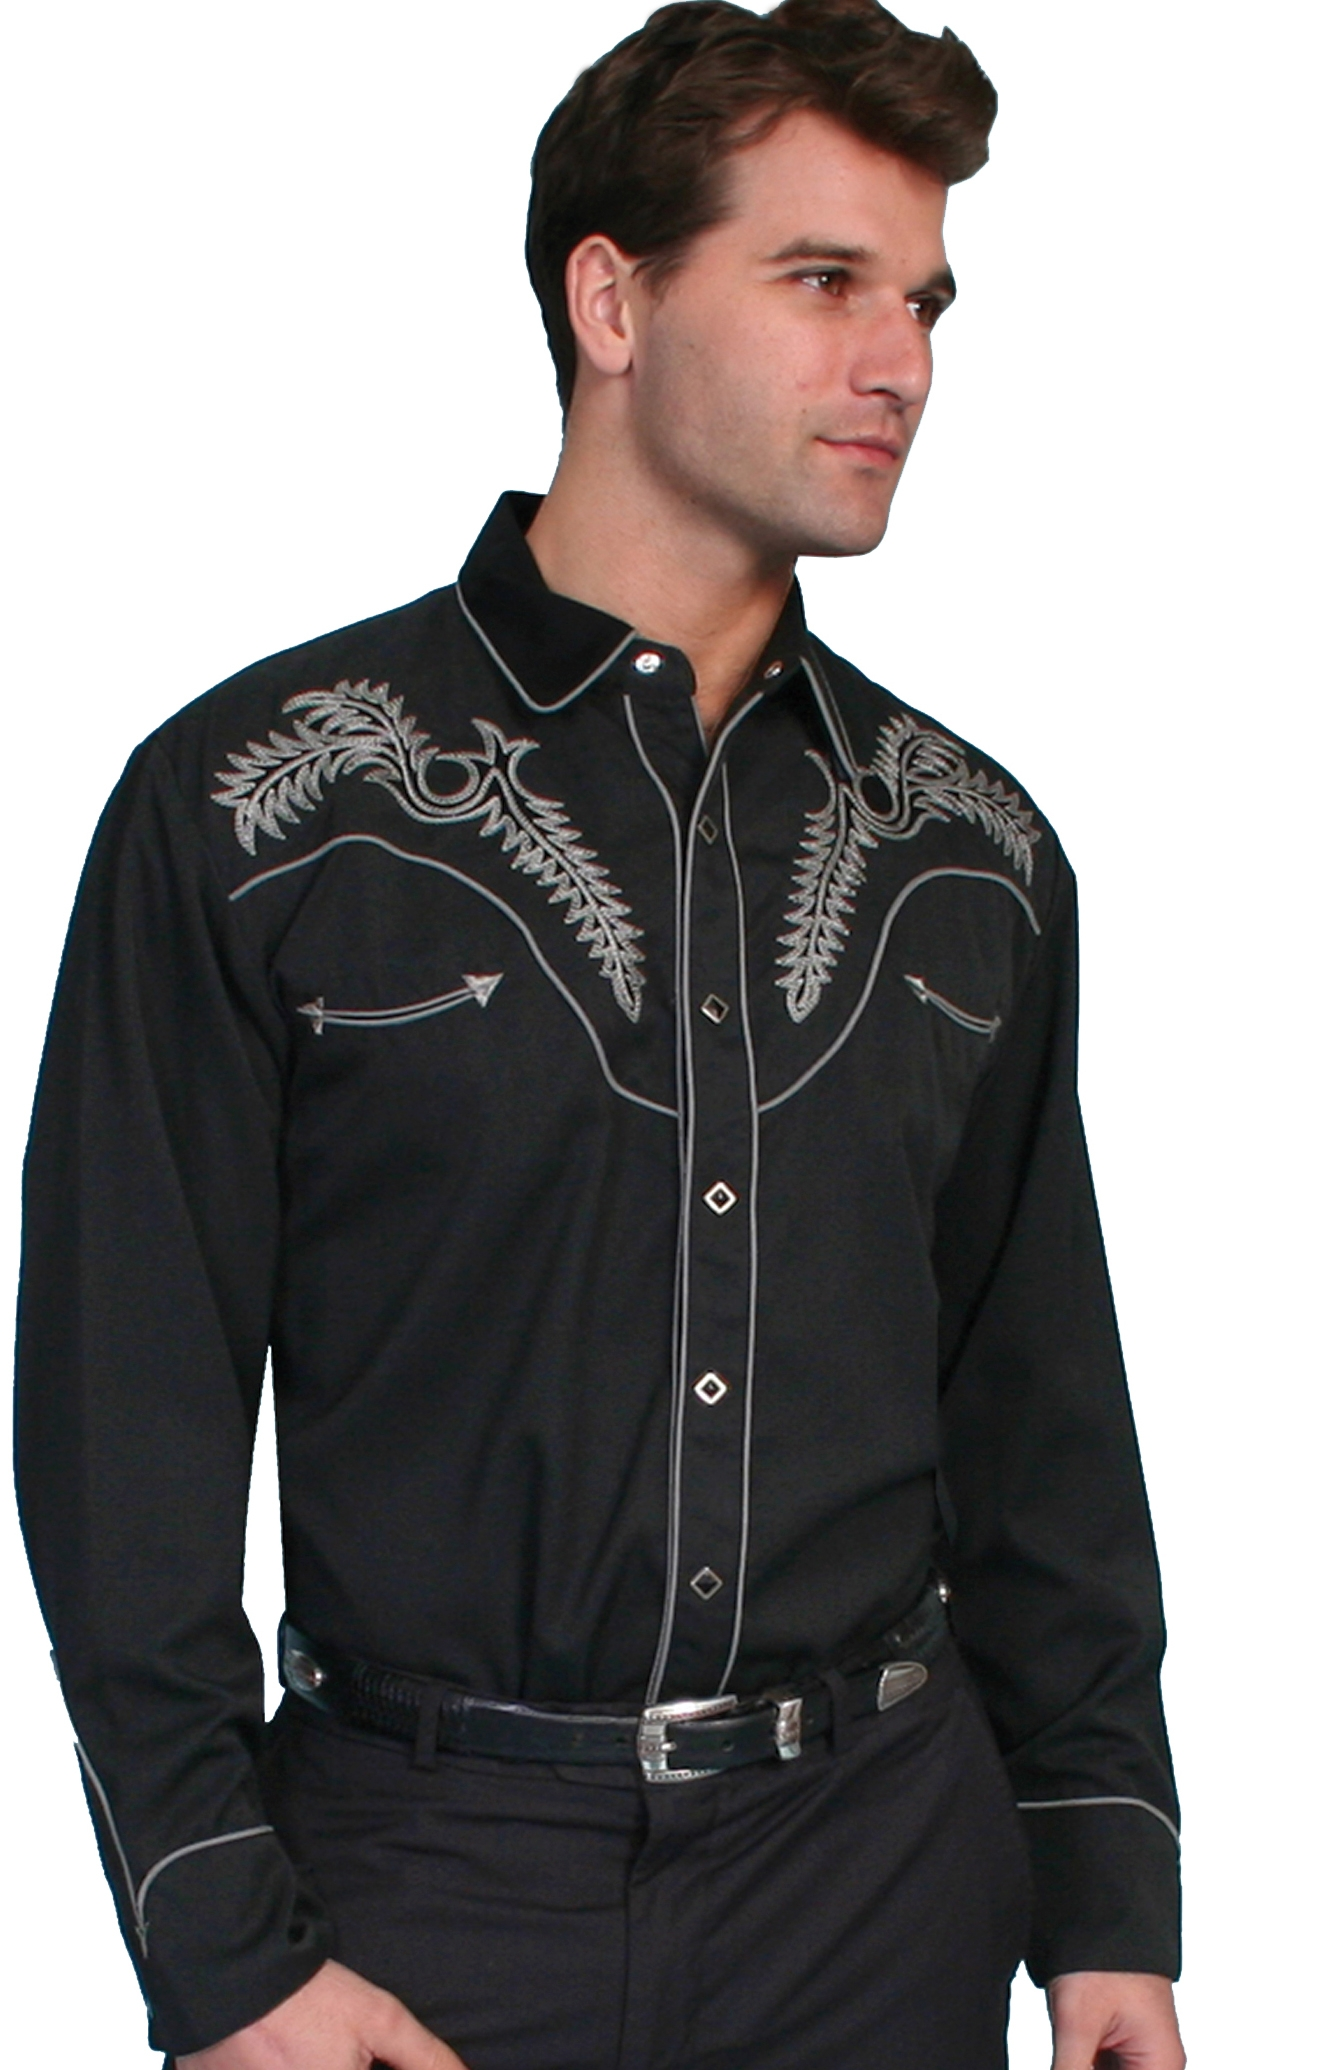 Scully mens western shirt, scully mens, mens scully, western shirt for men, scully shirt for men, cowboy shirt, retro western shirt, vintage shirt, mens vintage shirts, black western shirt